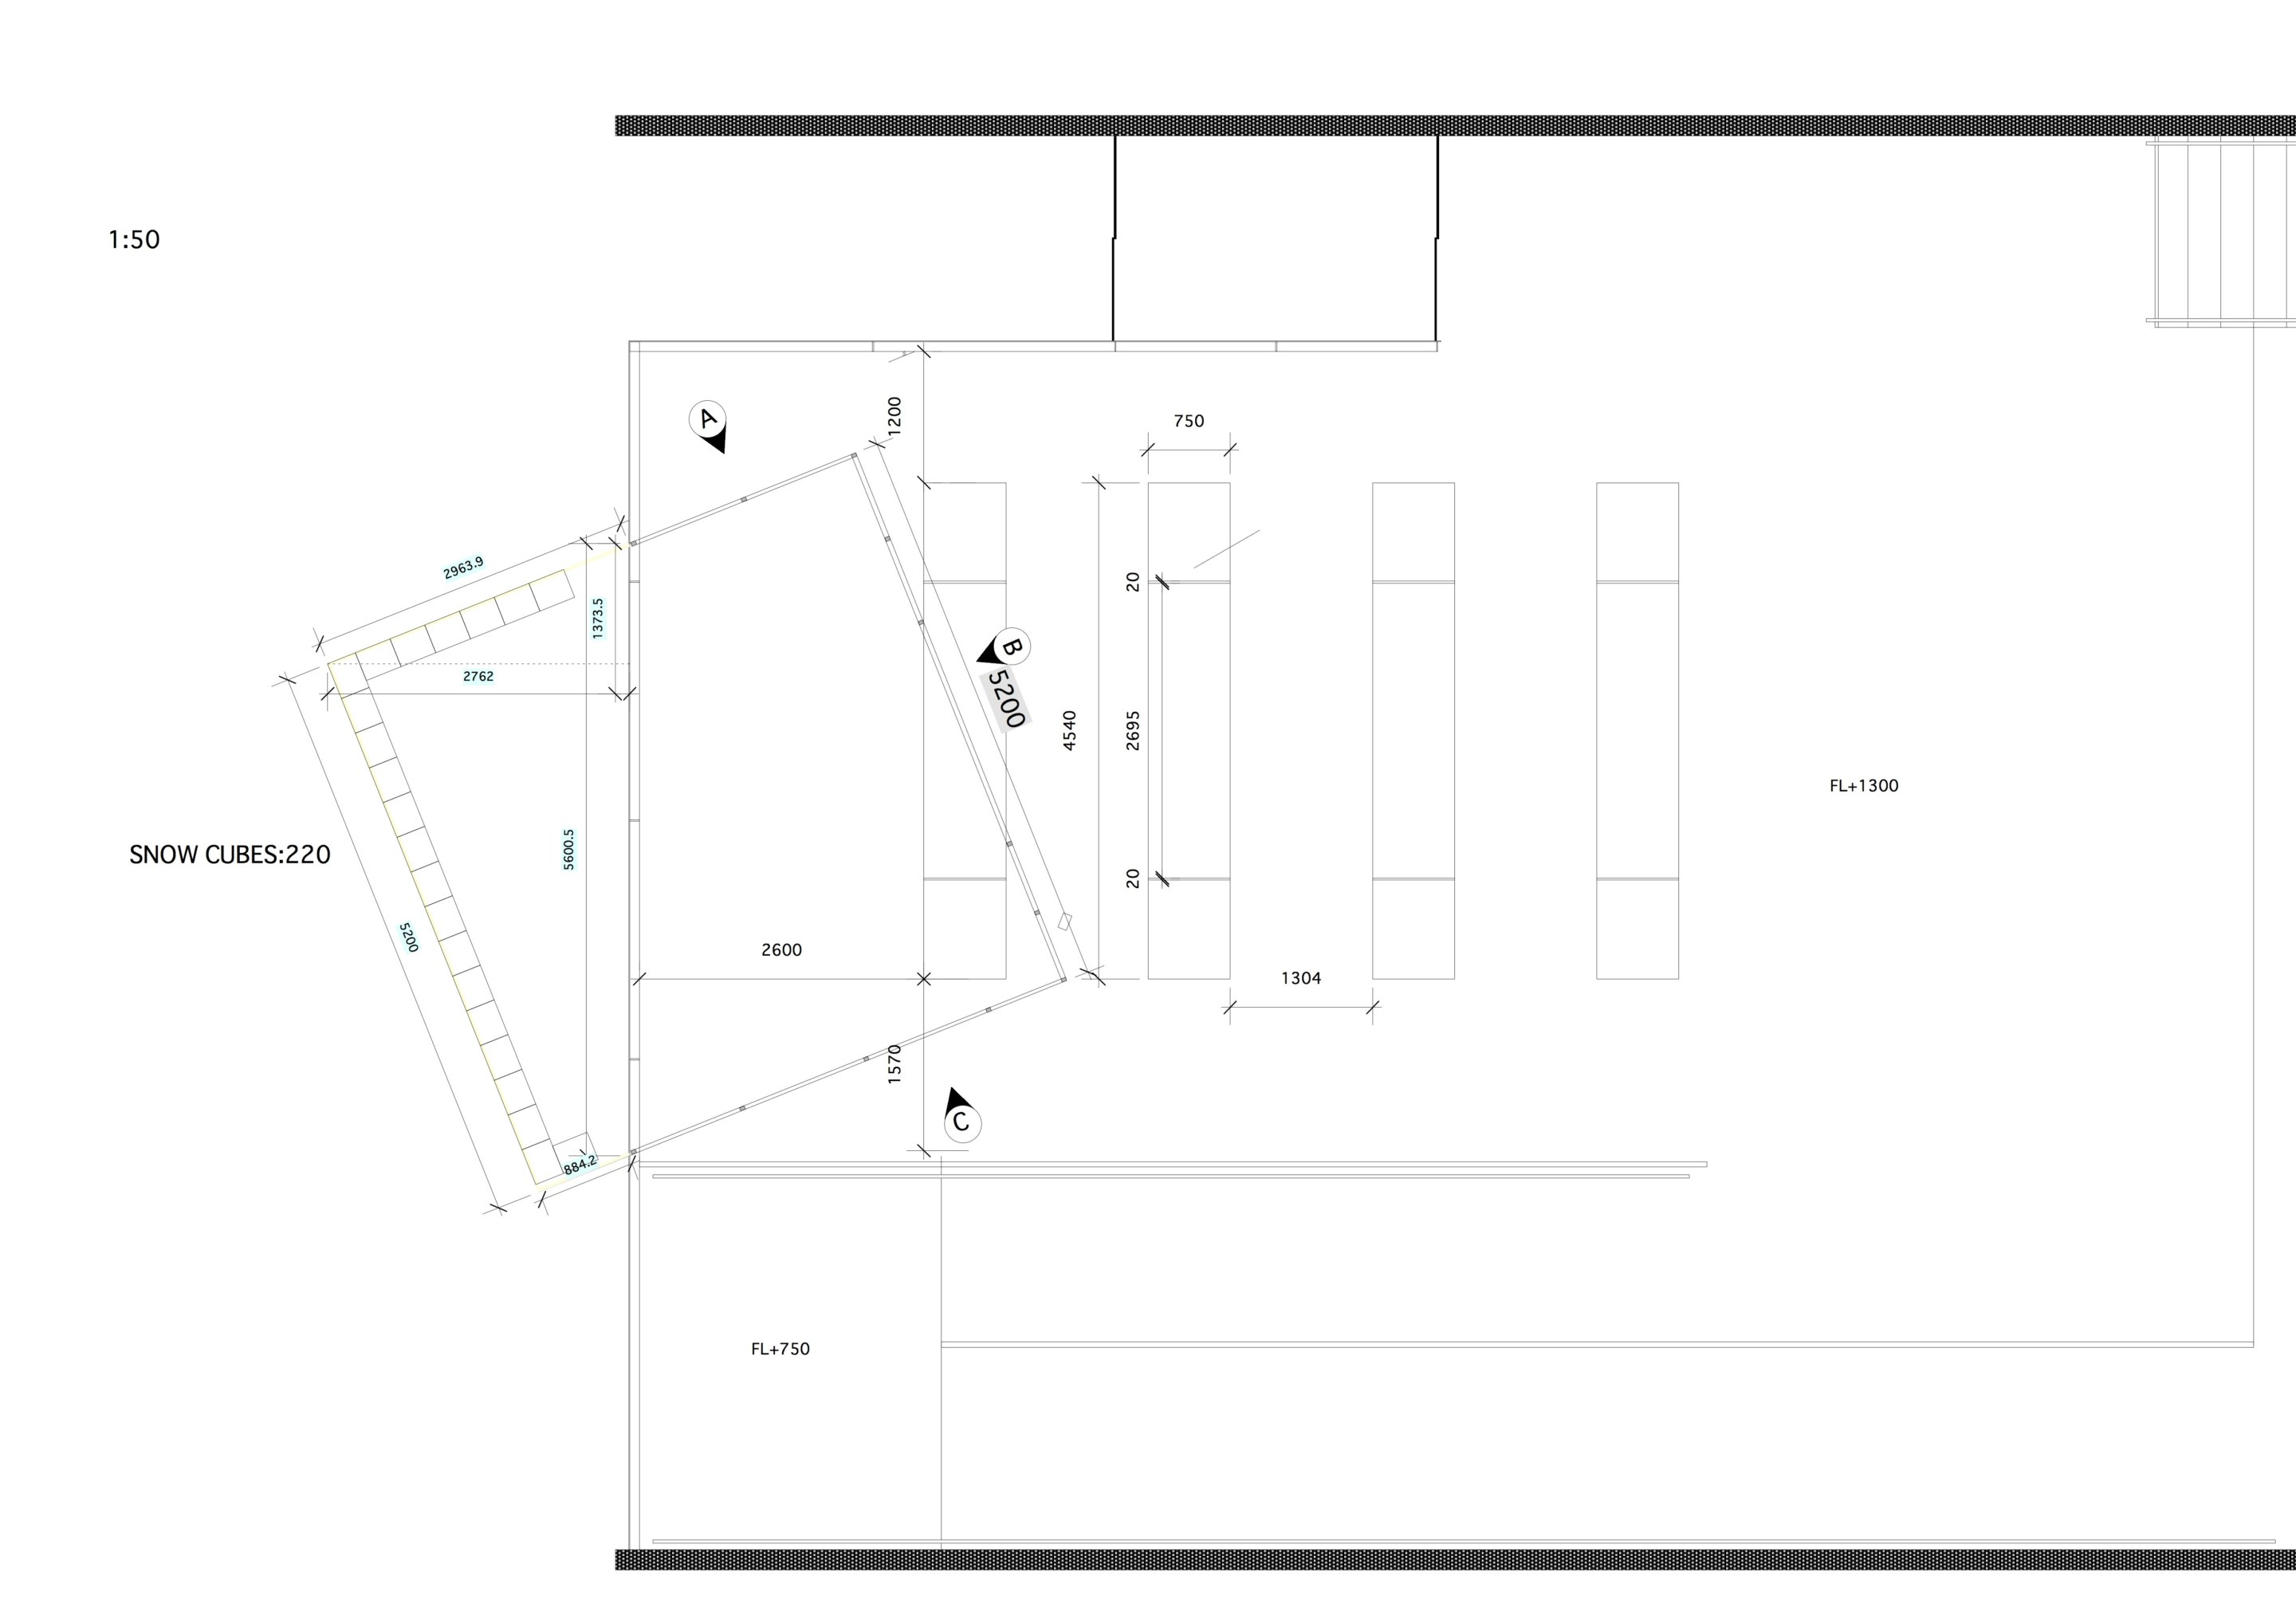 Architecture drawing, floor plan